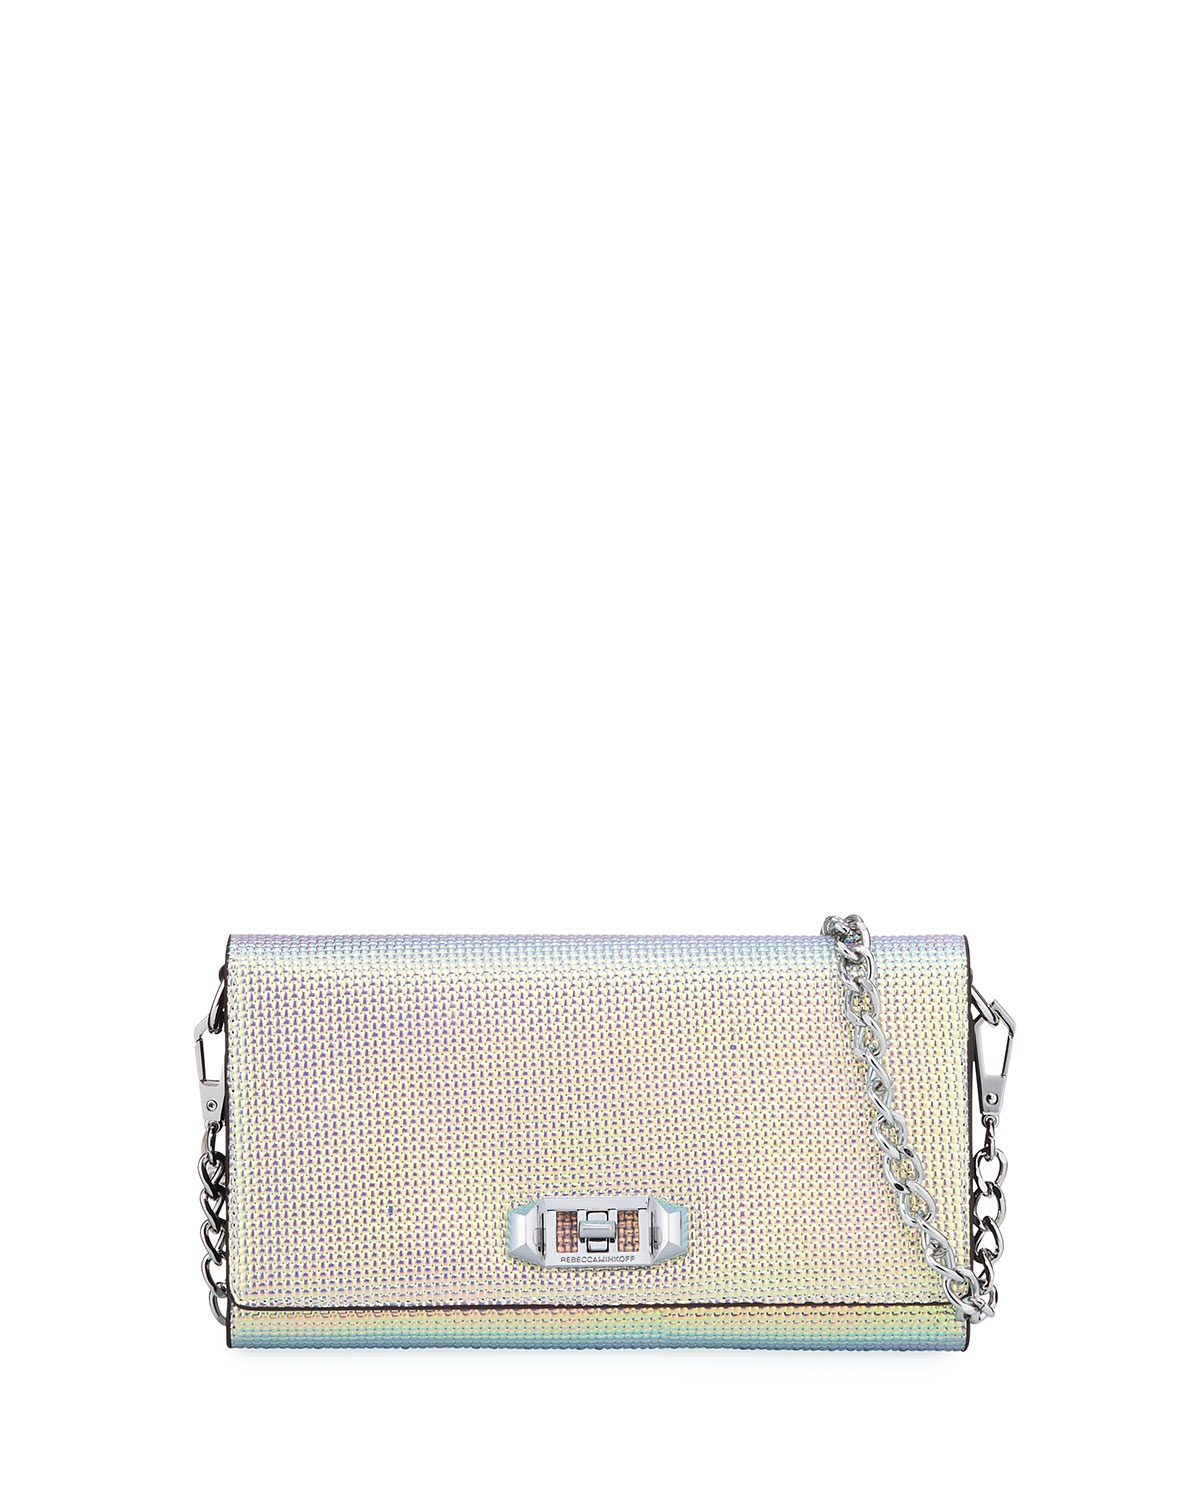 Lovelock Iridescent Crossbody Phone Case